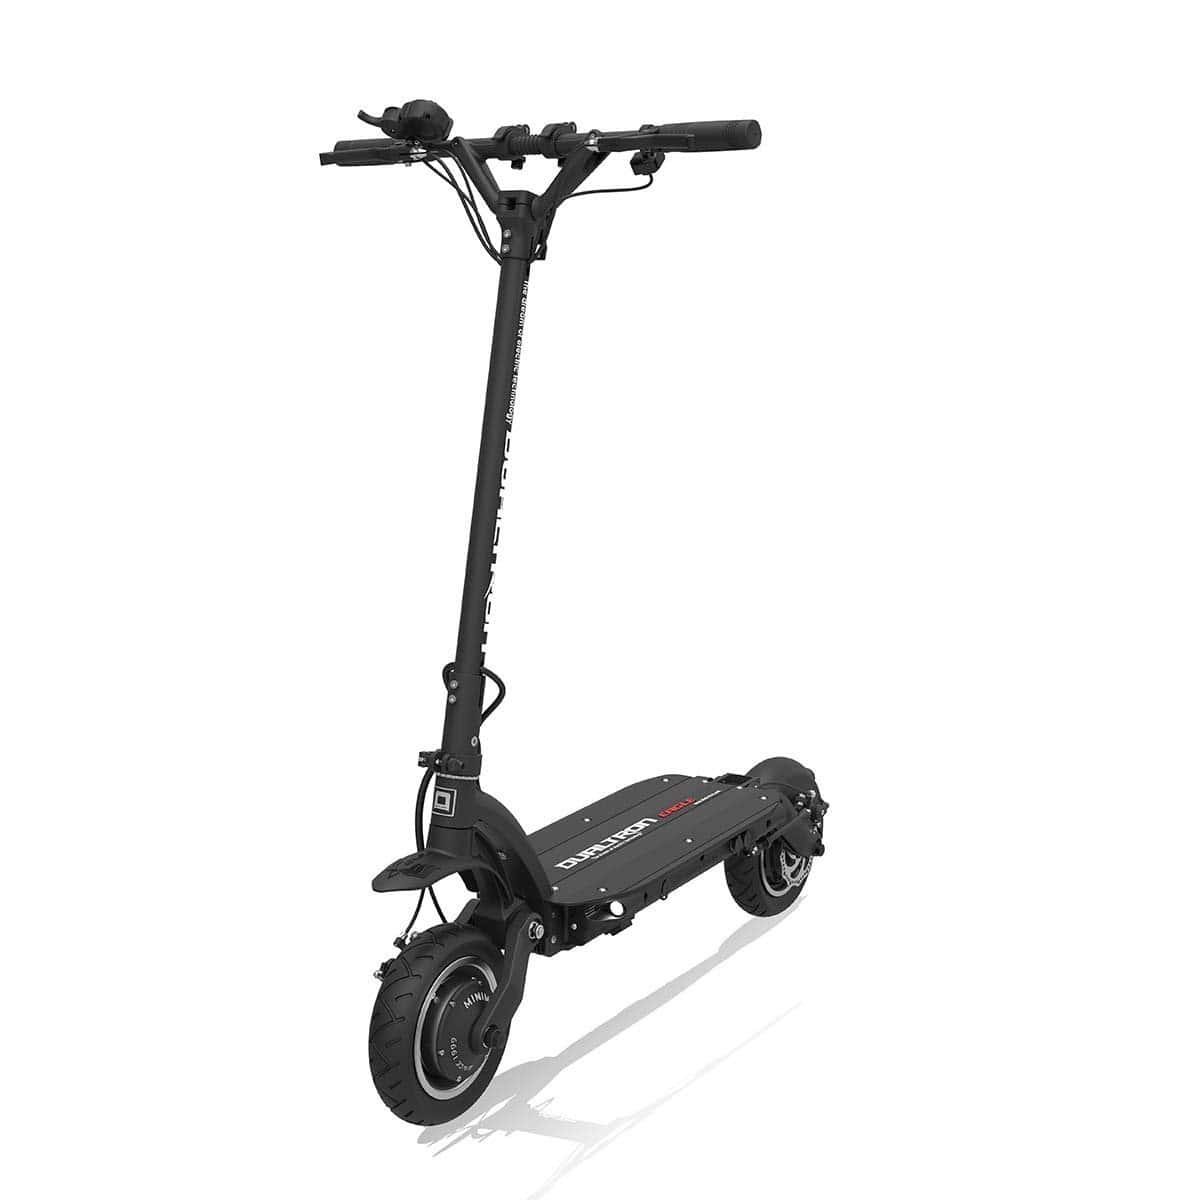 Dualtron Eagle - 3600w Electric Scooter - Beyond Scooters